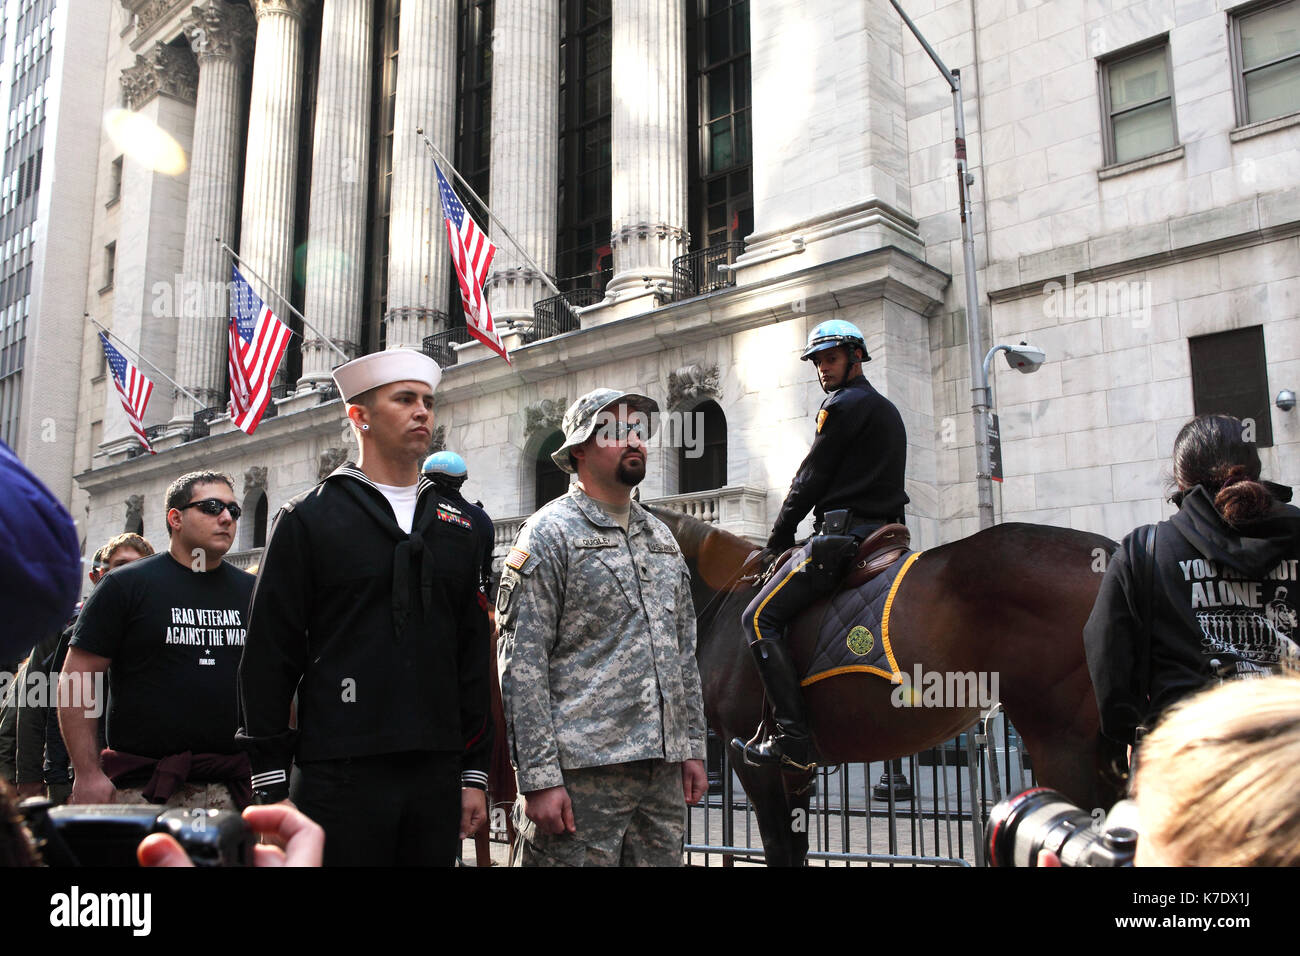 Veterans of the U.S. military march in front of the New York Stock Exchange toward Zuccotti Park in New York on Stock Photo